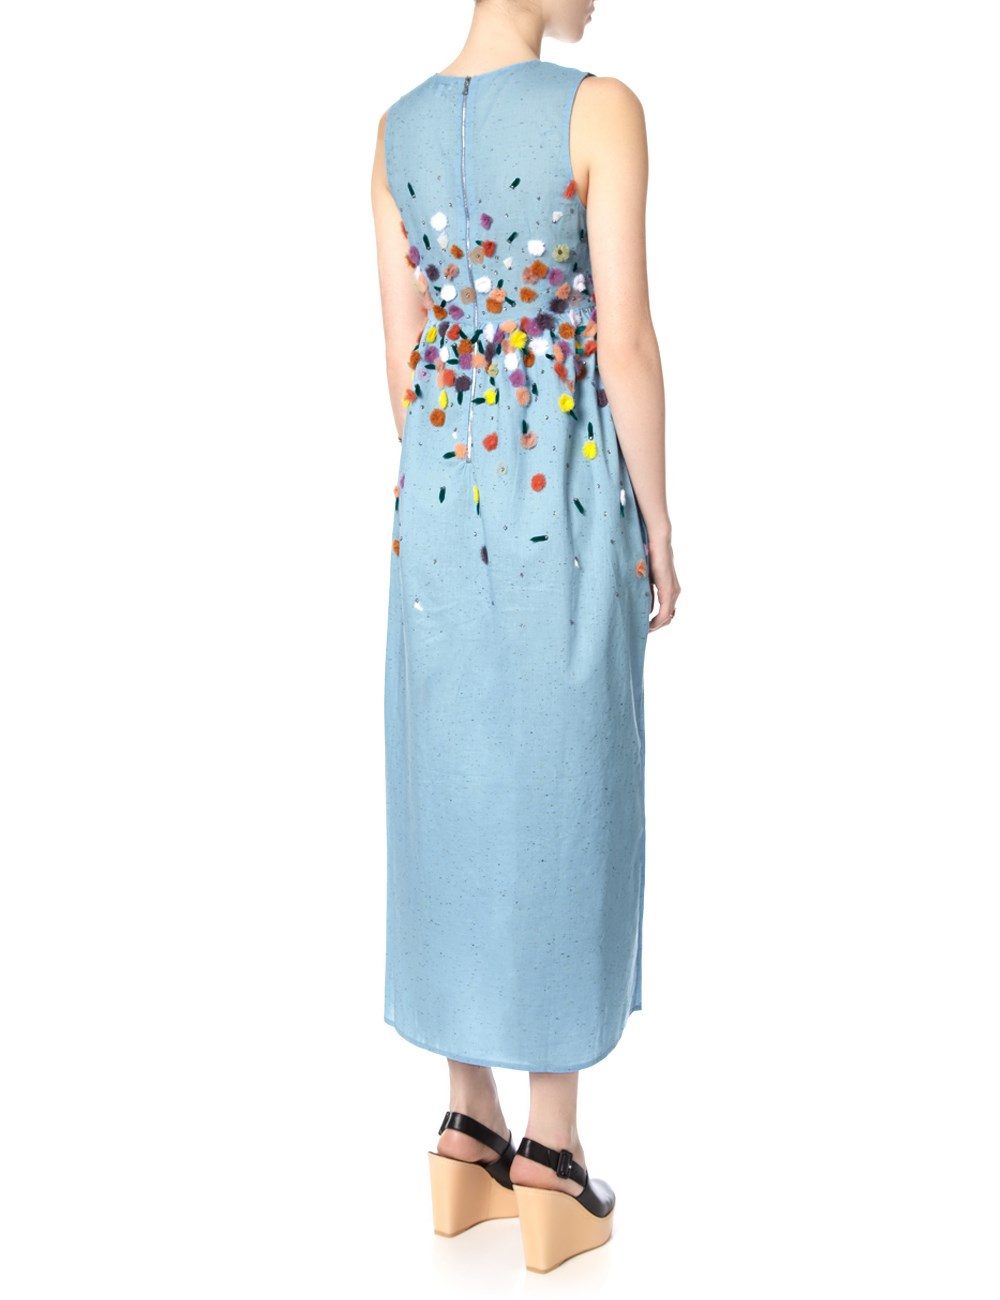 Suno blue chambray embroidered dress in lyst